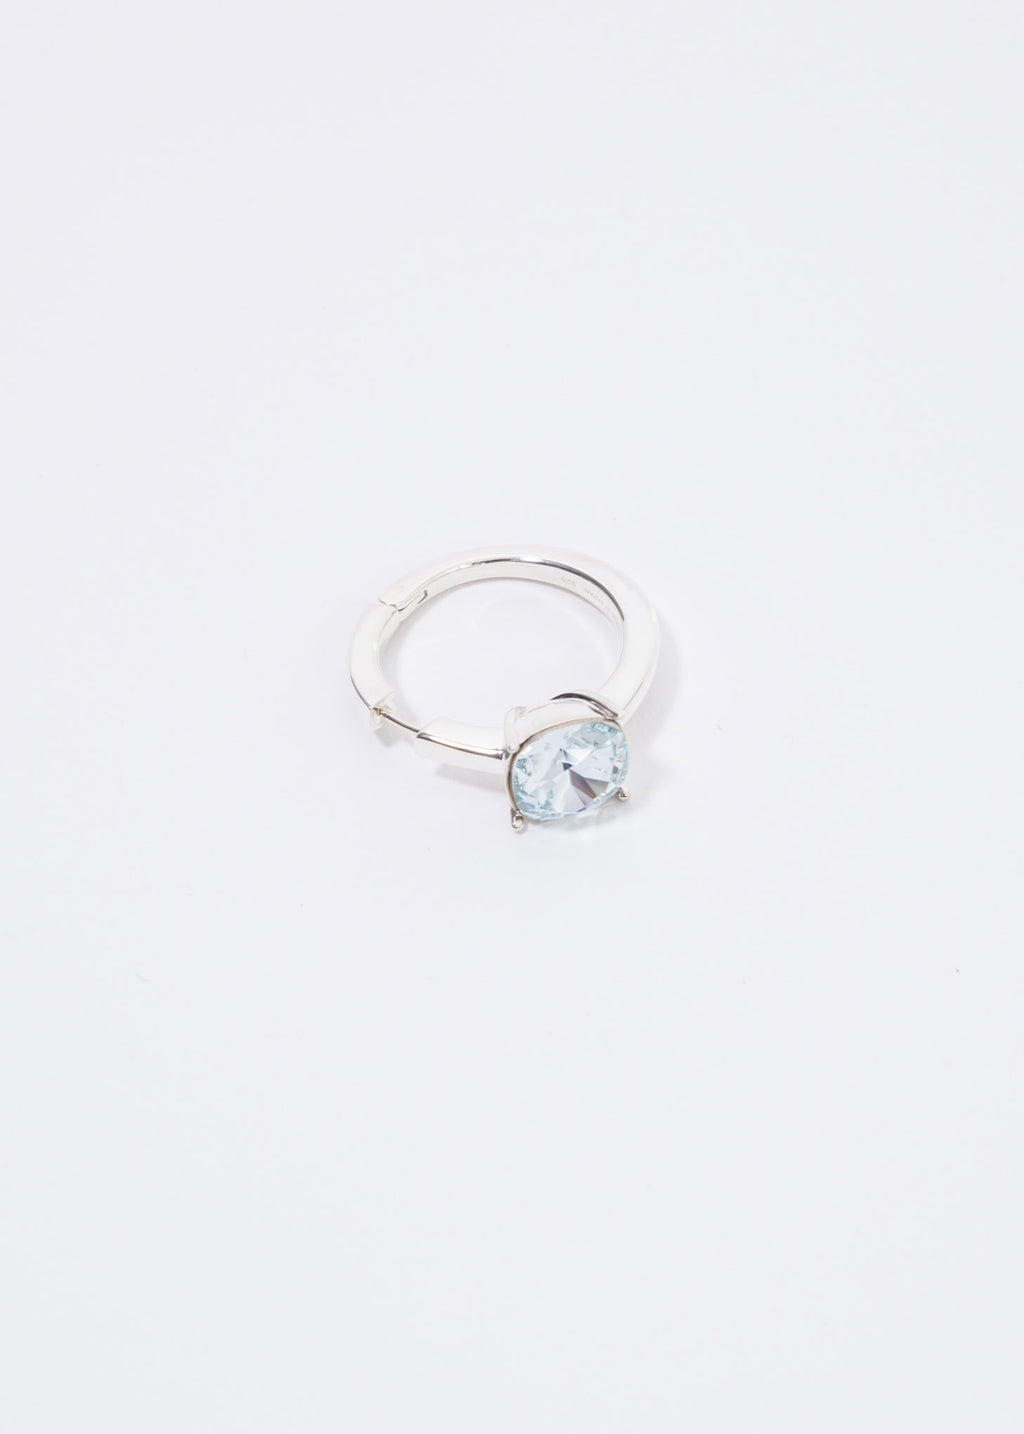 Silver And Blue Solitaire Single Earring